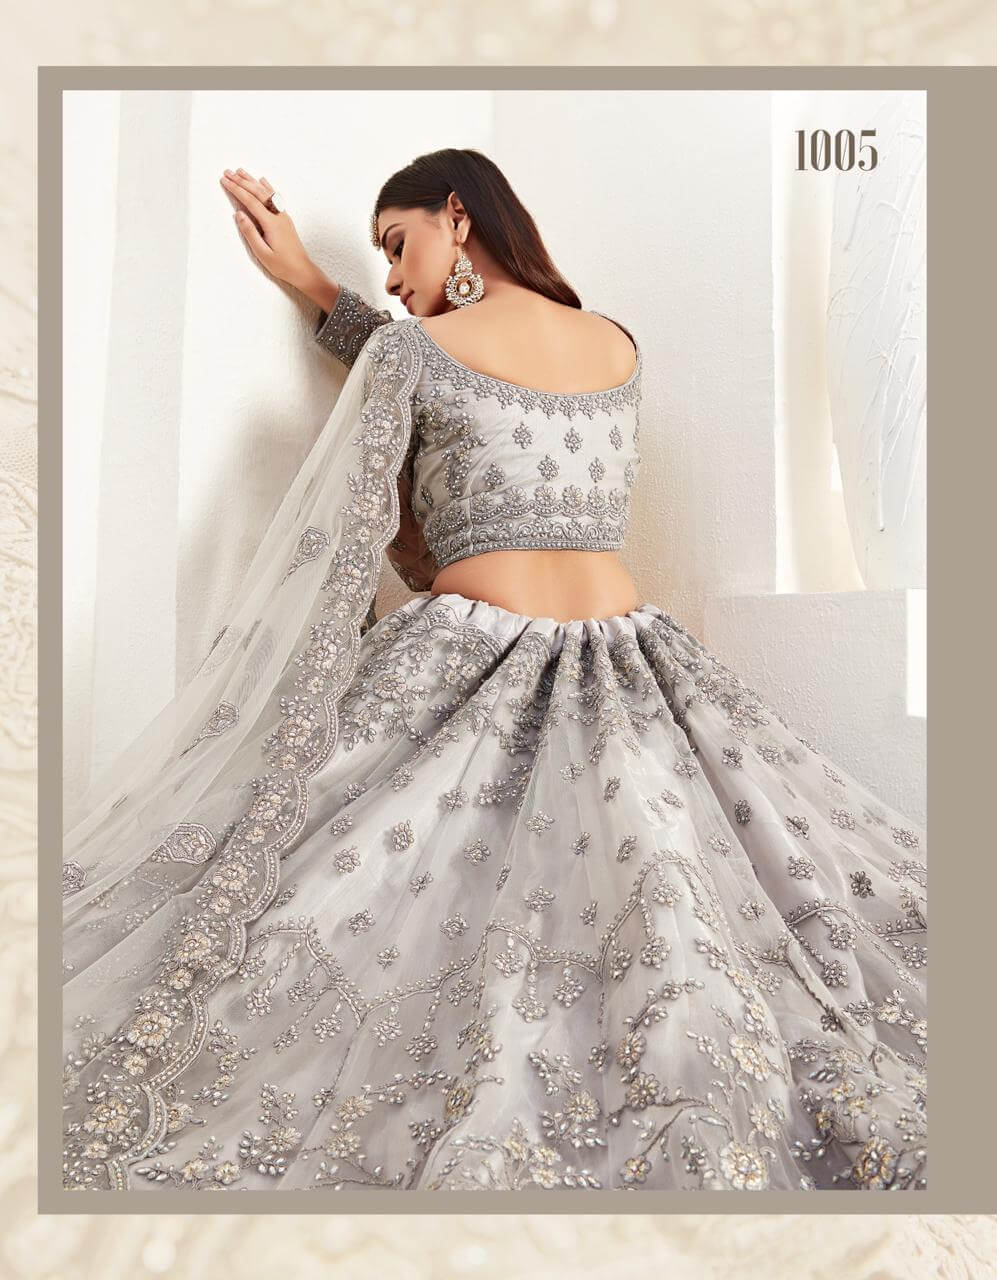 Alizeh Bridal Heritage Vol 2 collection 4